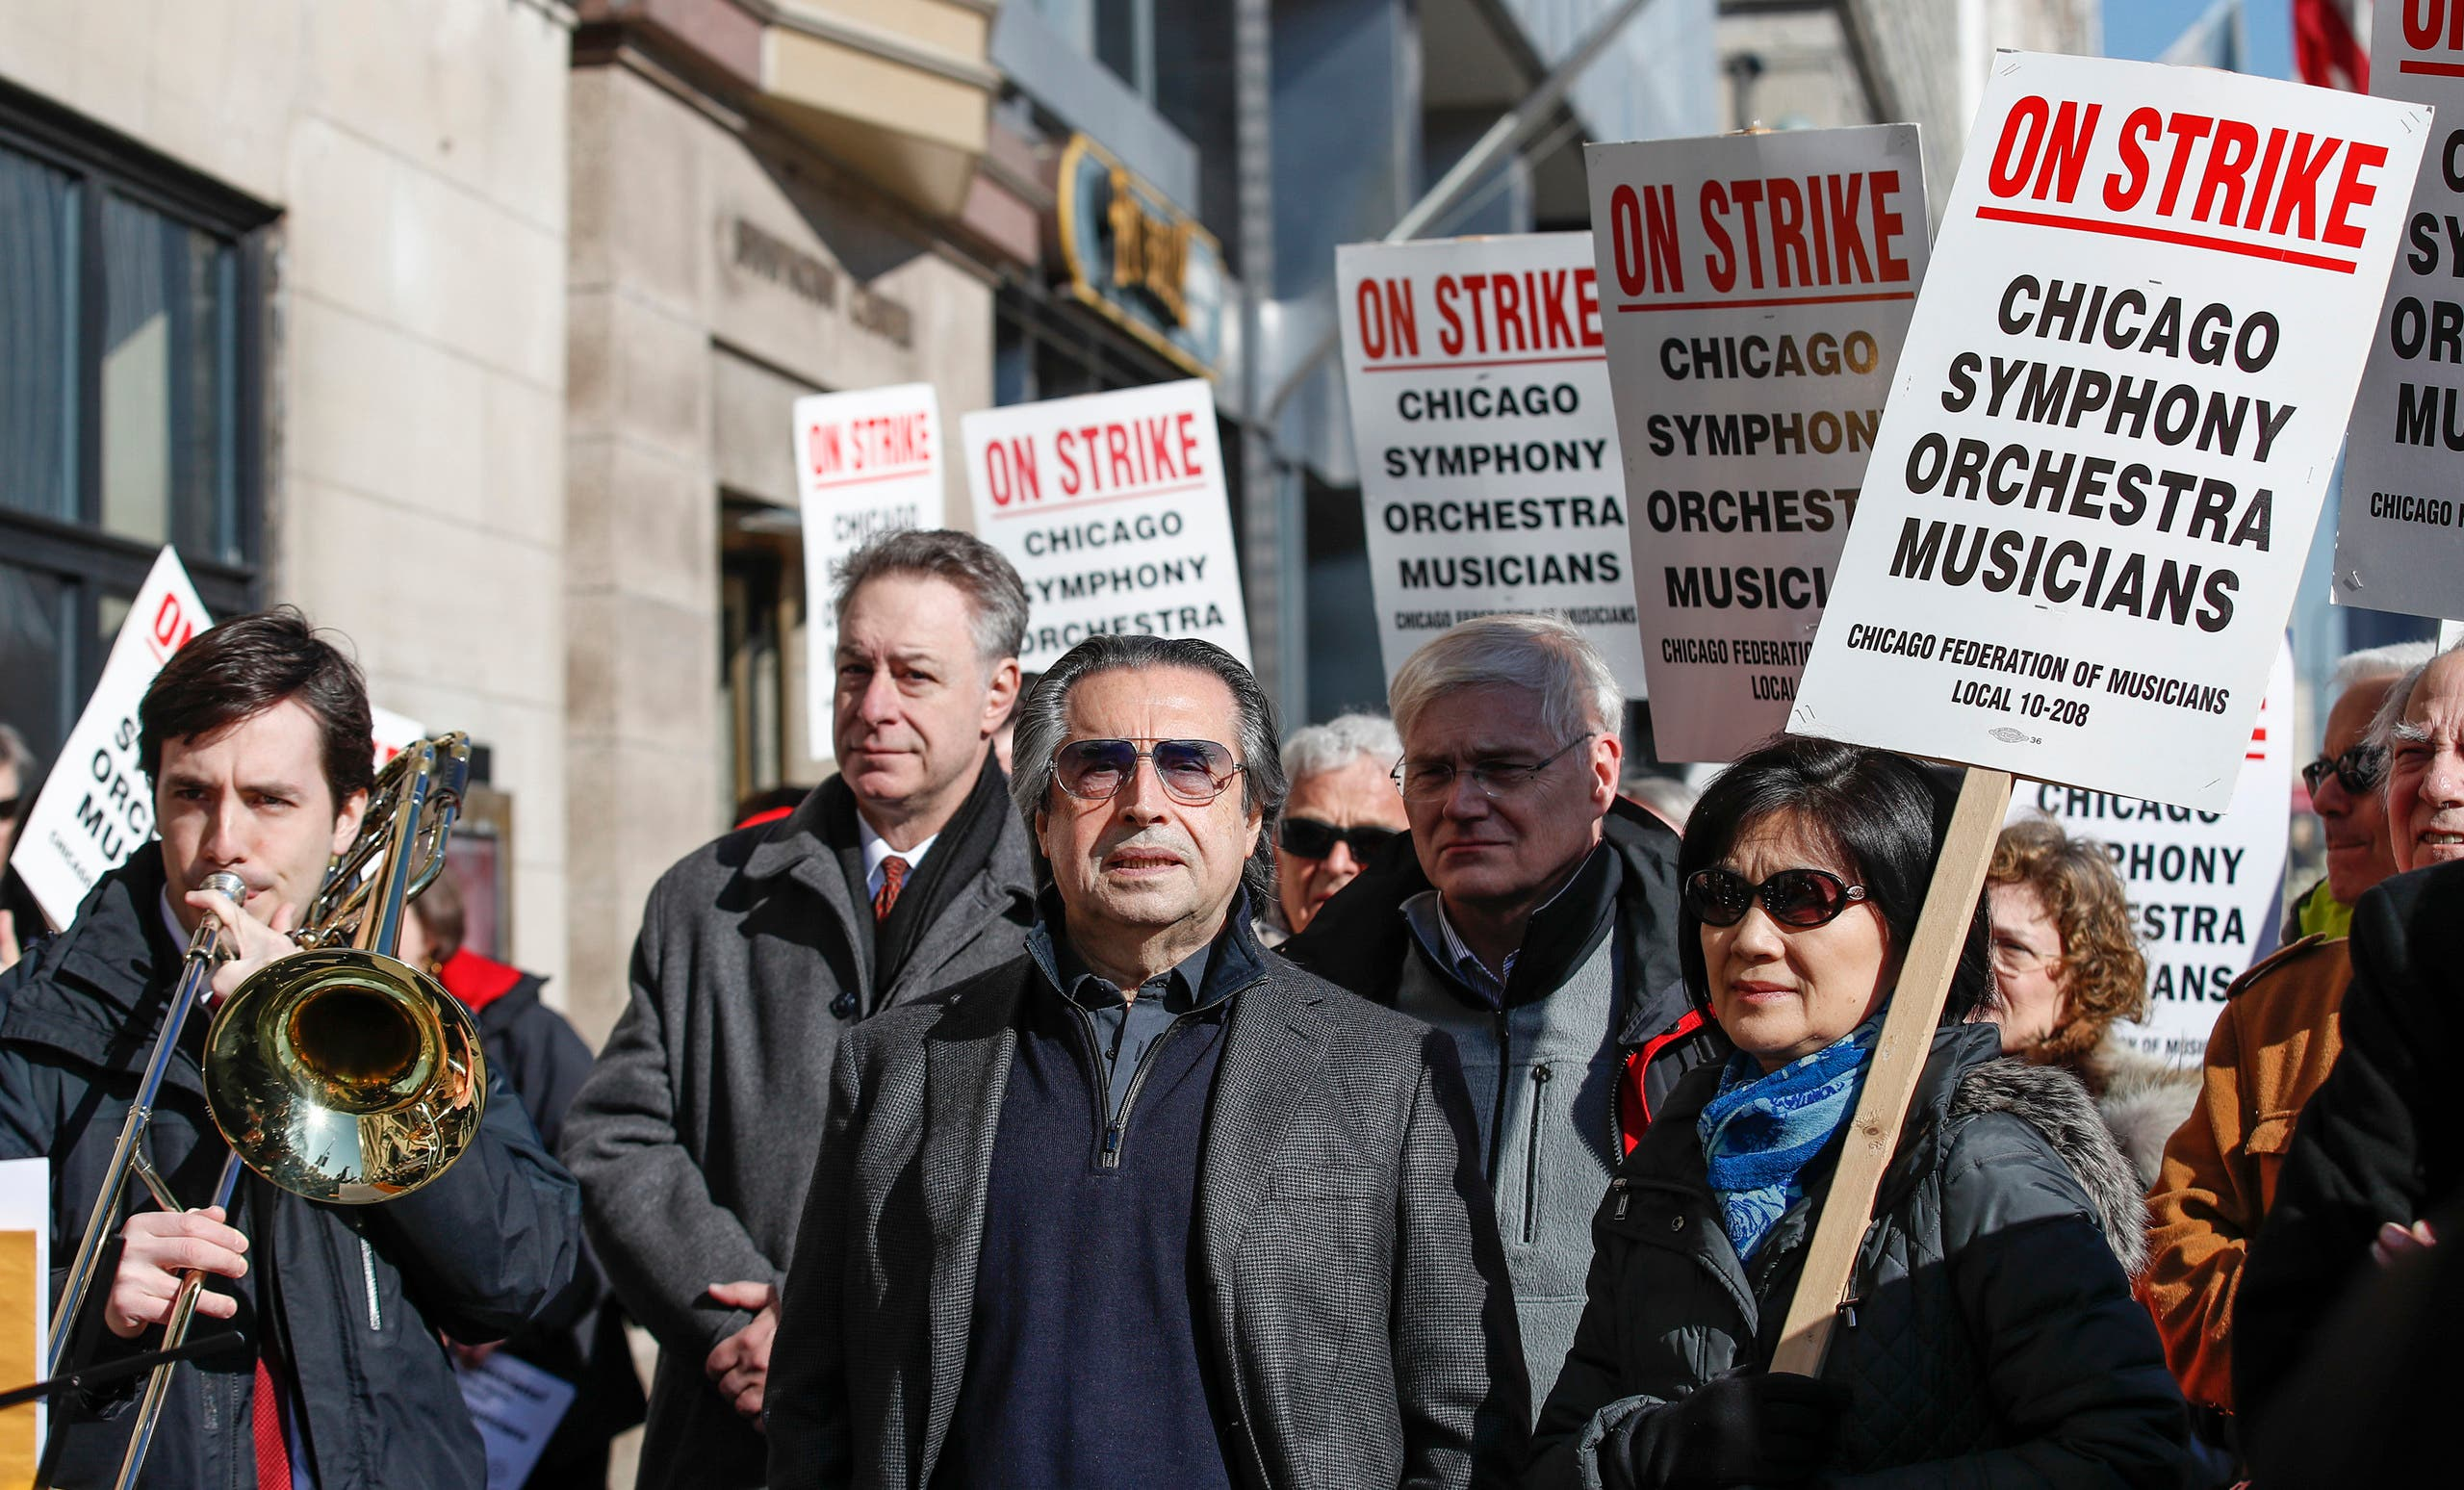 Chicago Symphony Orchestra conductor Riccardo Muti (C) joins striking members of the Chicago Symphony Orchestra as they picket outside Symphony Center on March 12, 2019 in Chicag. (AP)